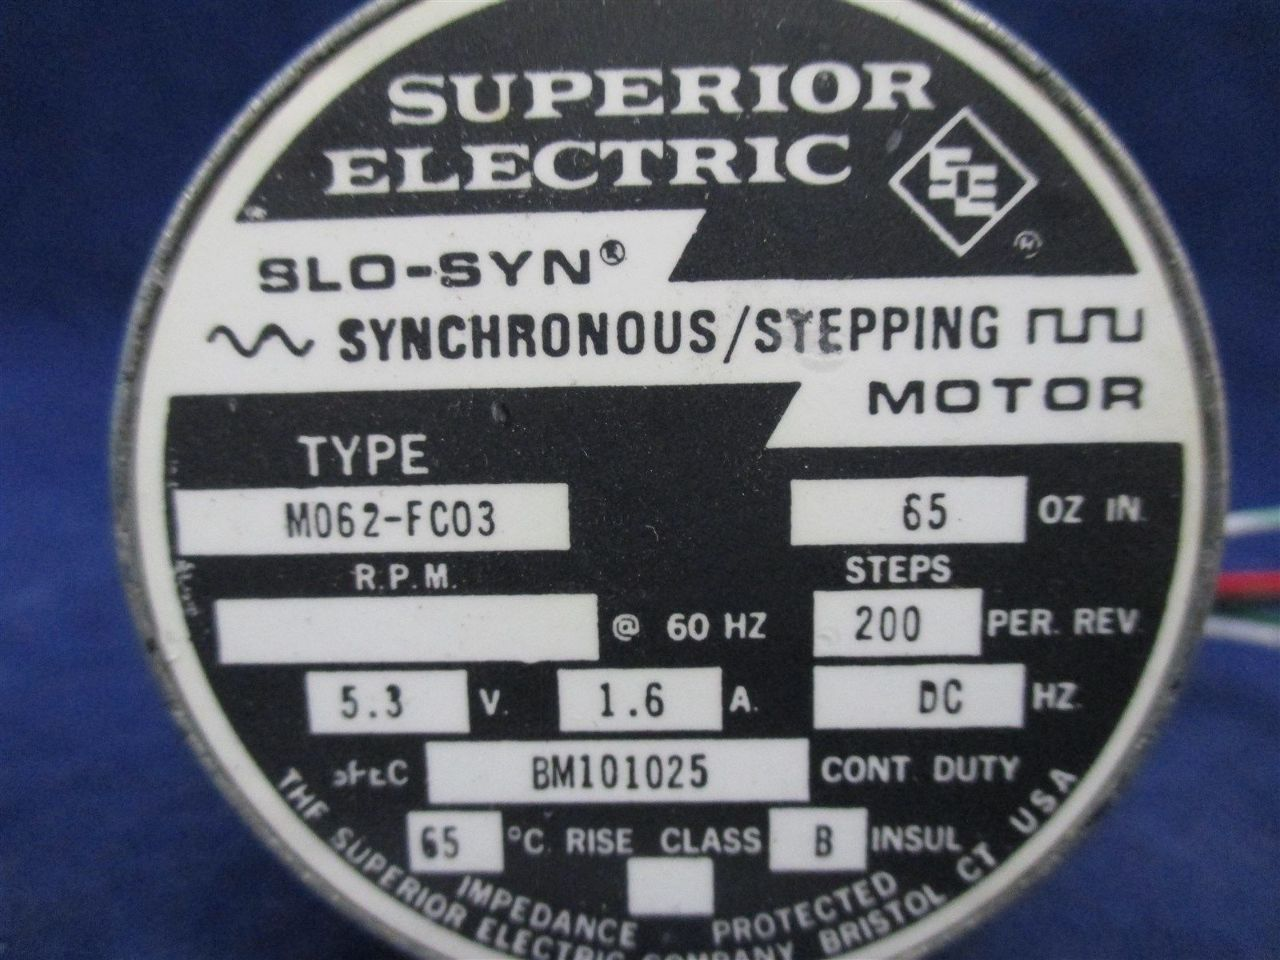 Superior electric m062 fc03 slo syn stepping motor for Superior electric slo syn motor